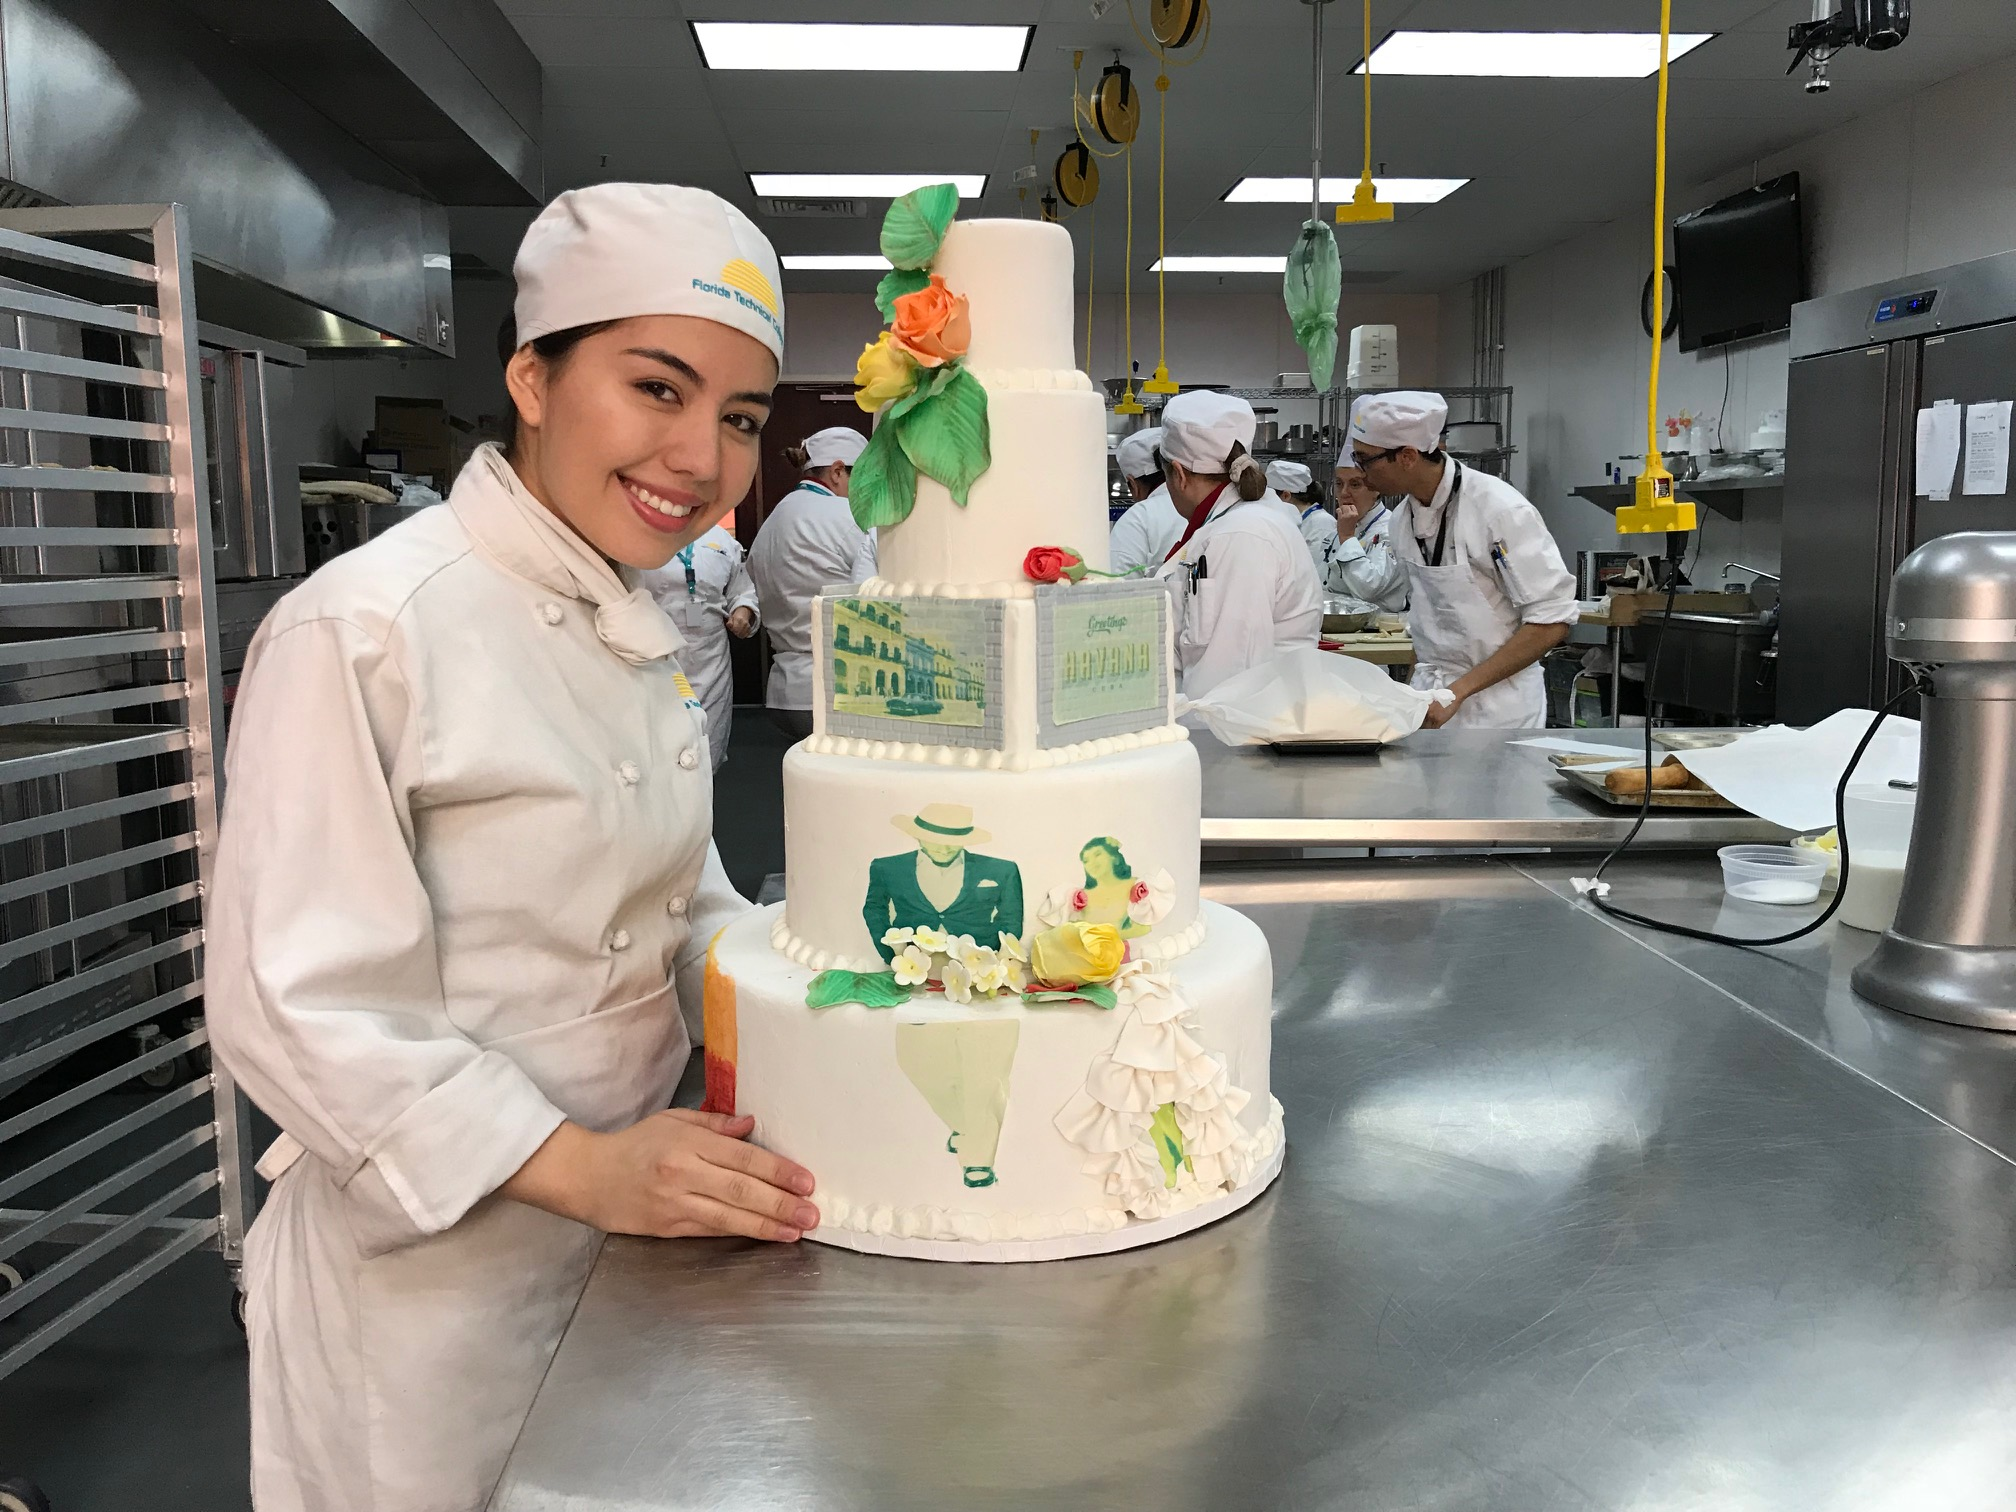 Florida Technical College Opens Registration For Baking And Pasteleria Program In Spanish Nonahood News